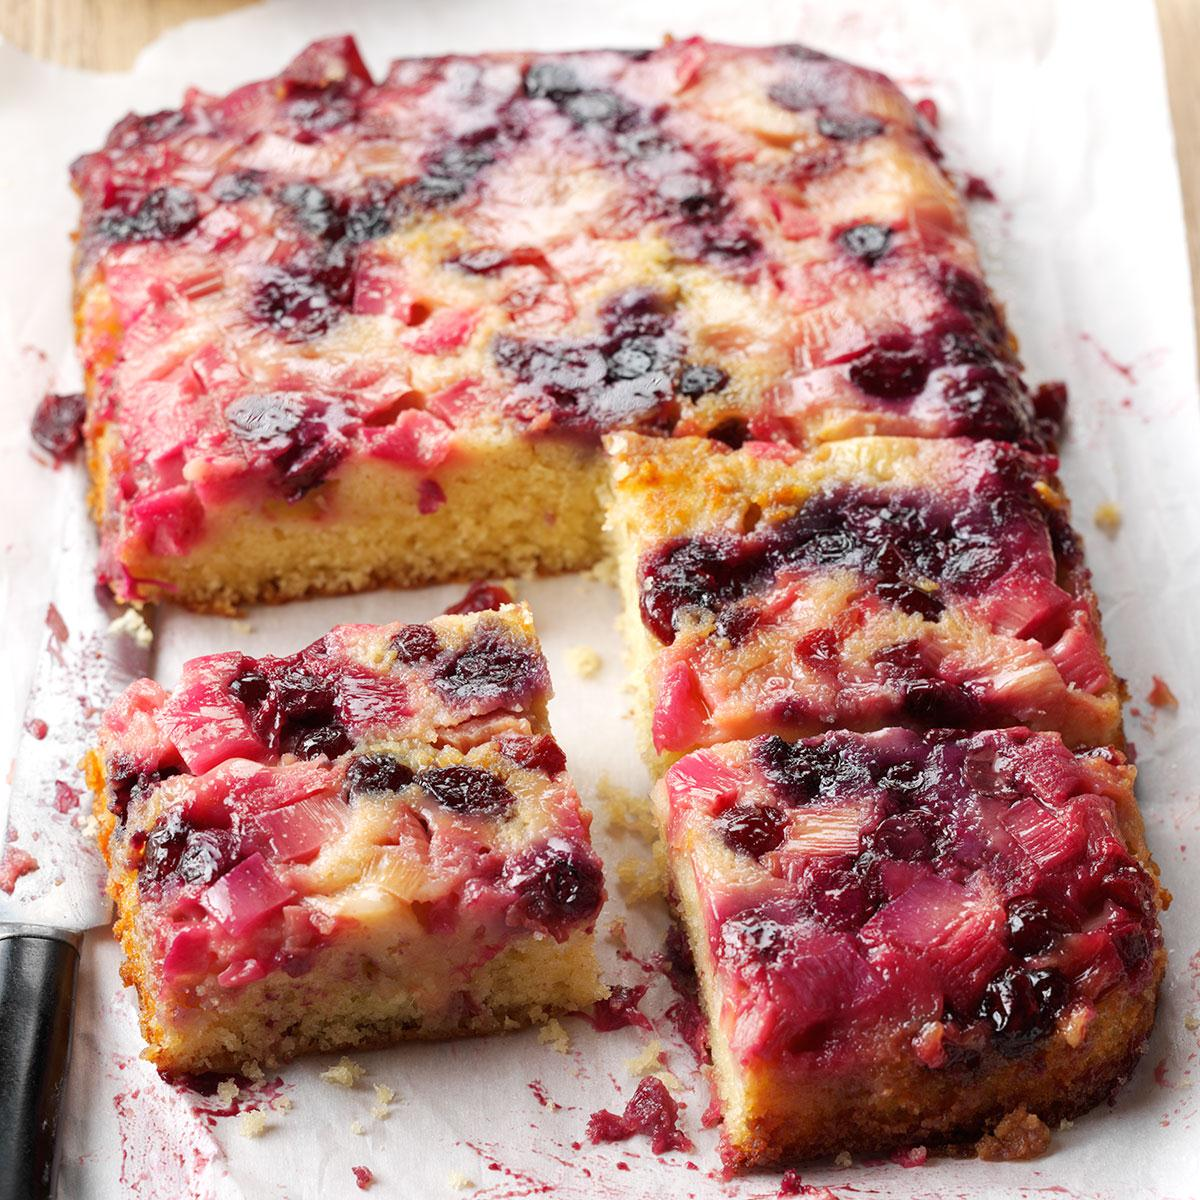 Rhubarb Berry Upside Down Cake Recipe How To Make It Taste Of Home